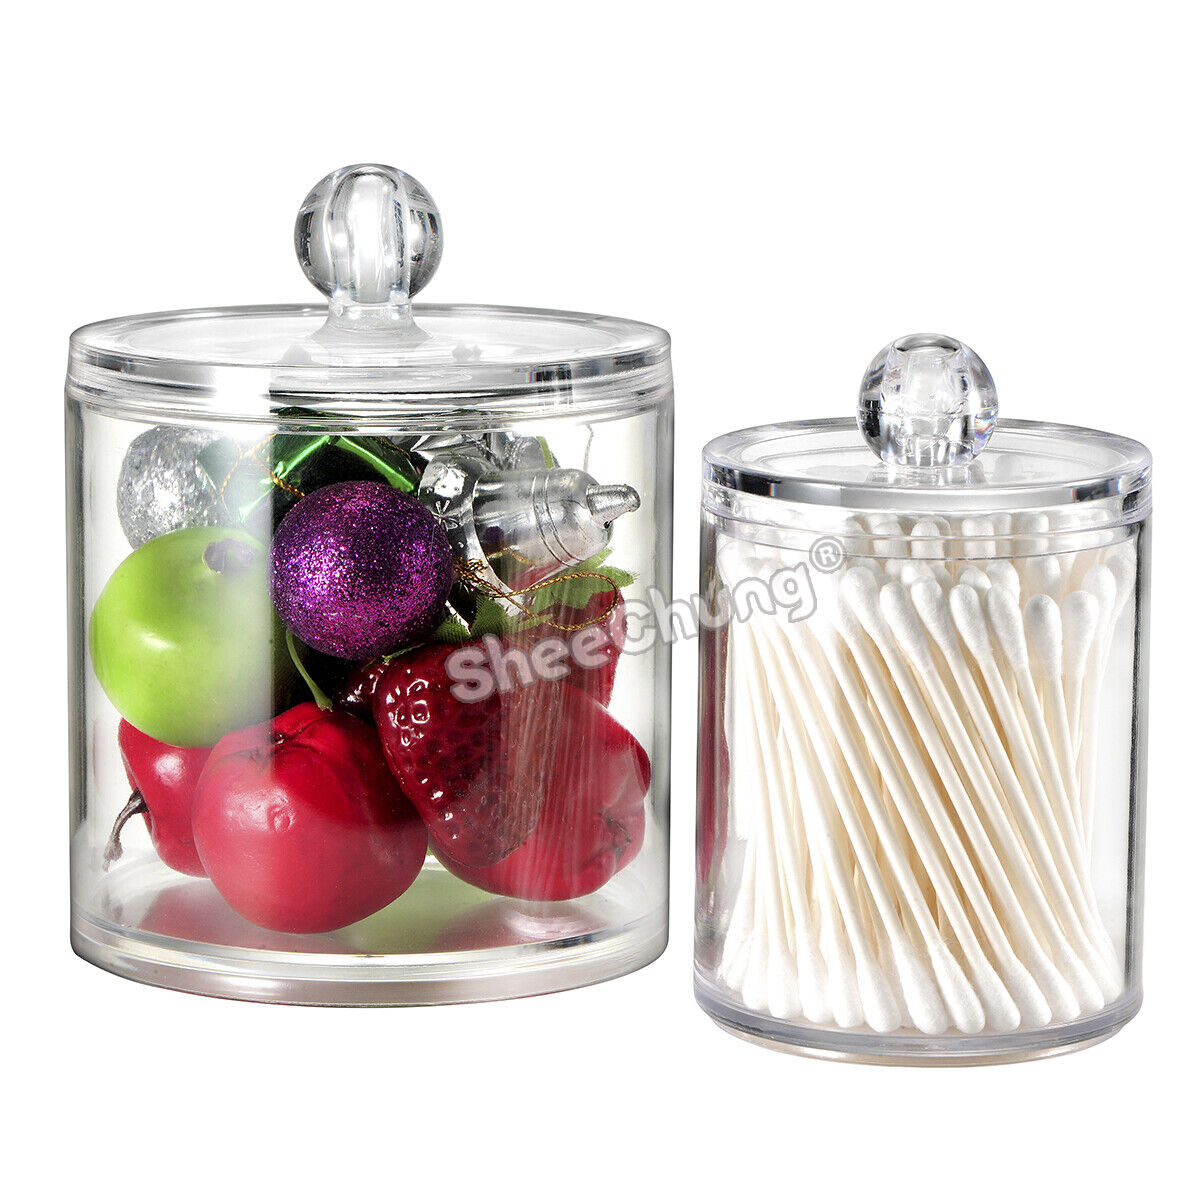 Apothecary Jars Qtip Holder Canister Jar for Cotton Swab Bal